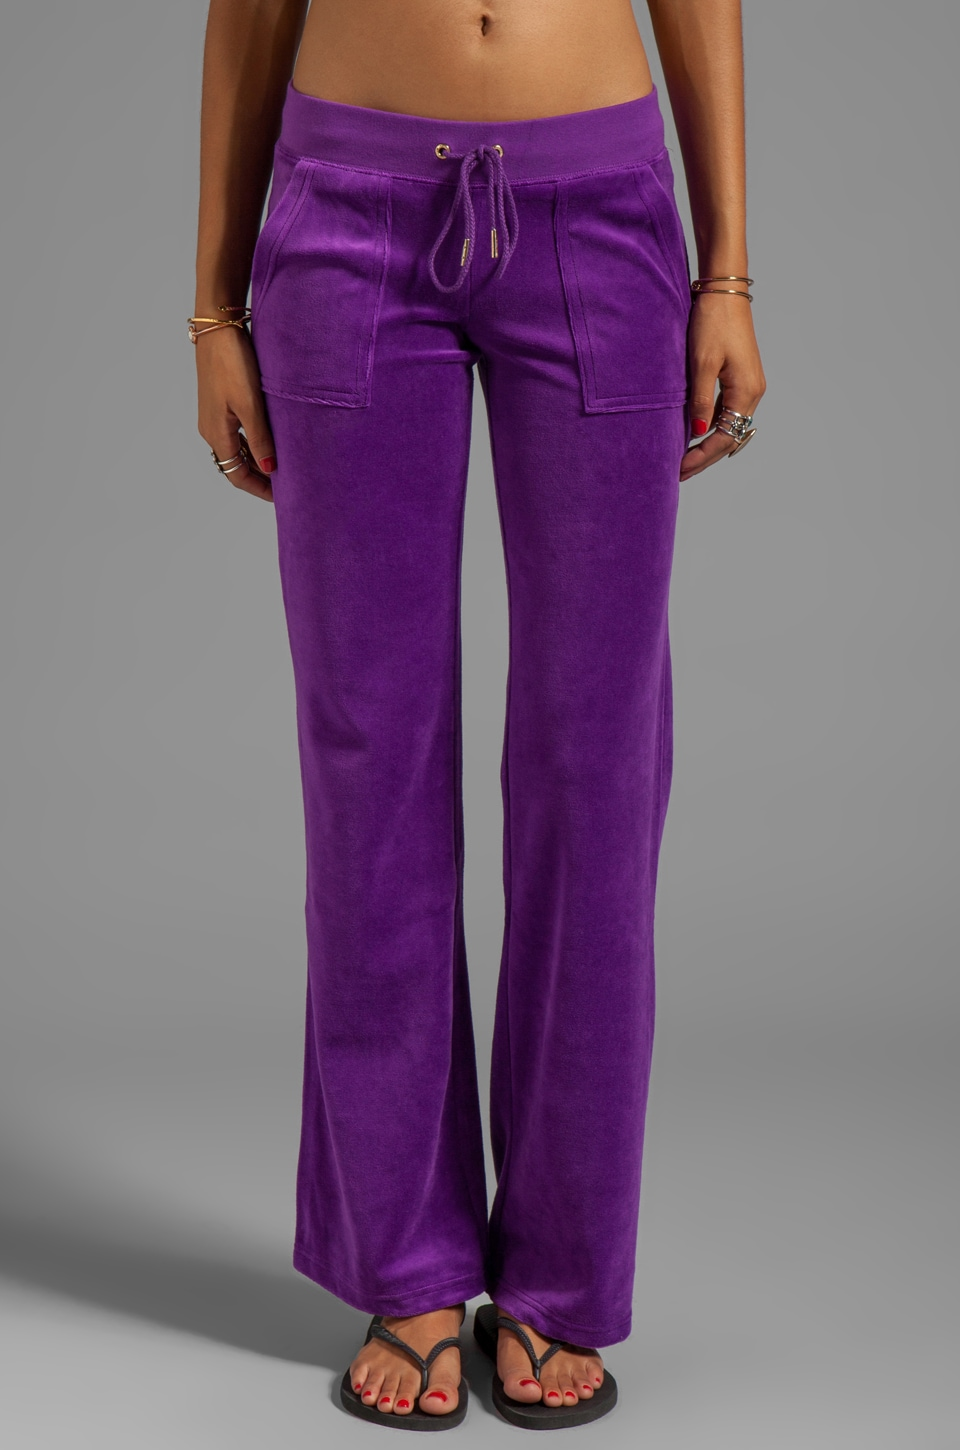 Juicy Couture Velour J Bling Bootcut Sweatpant in Deep Orchid